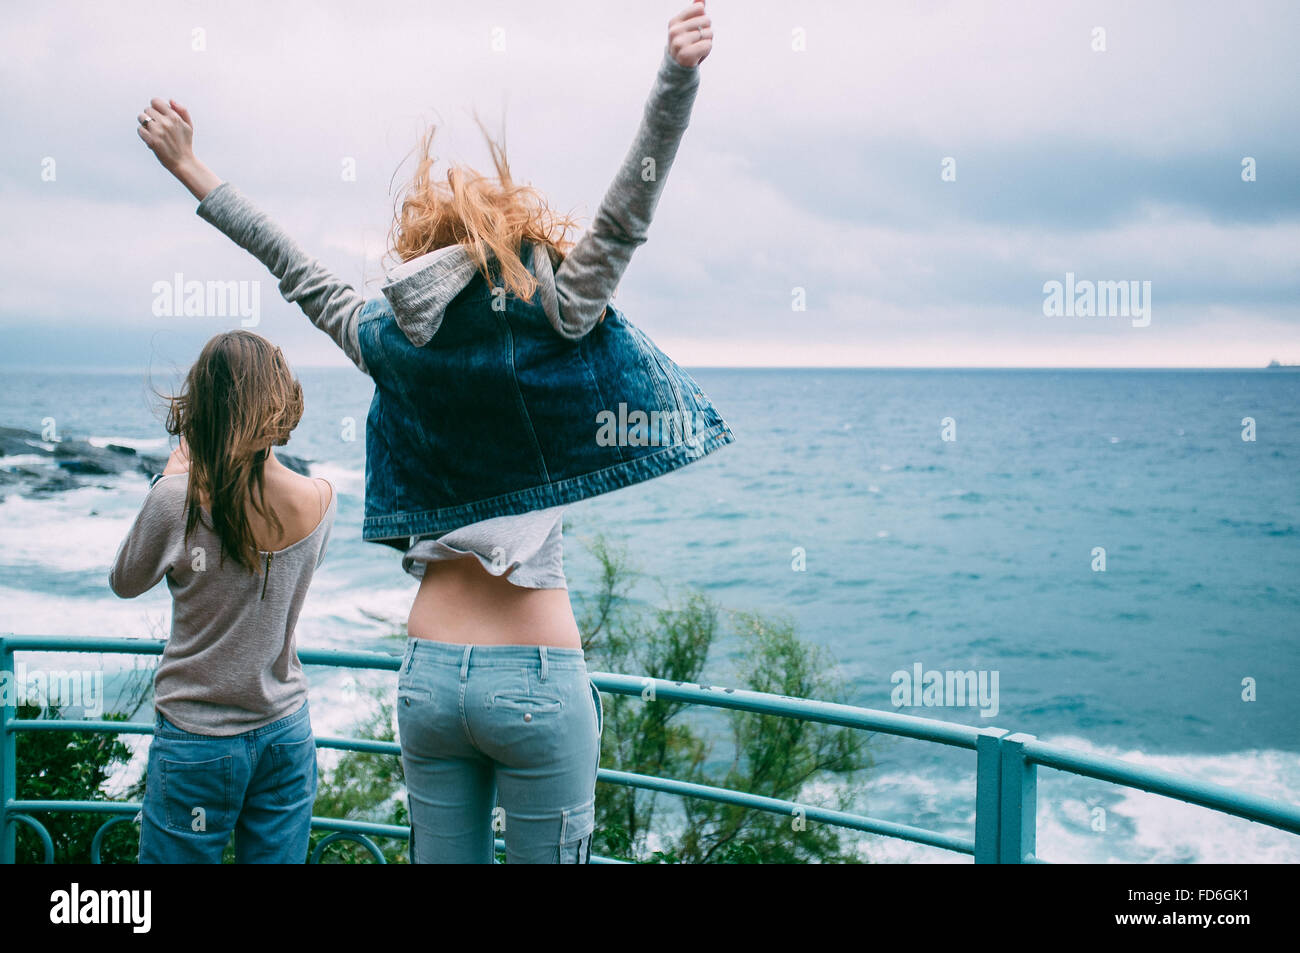 Two Young Women On Promenade - Stock Image